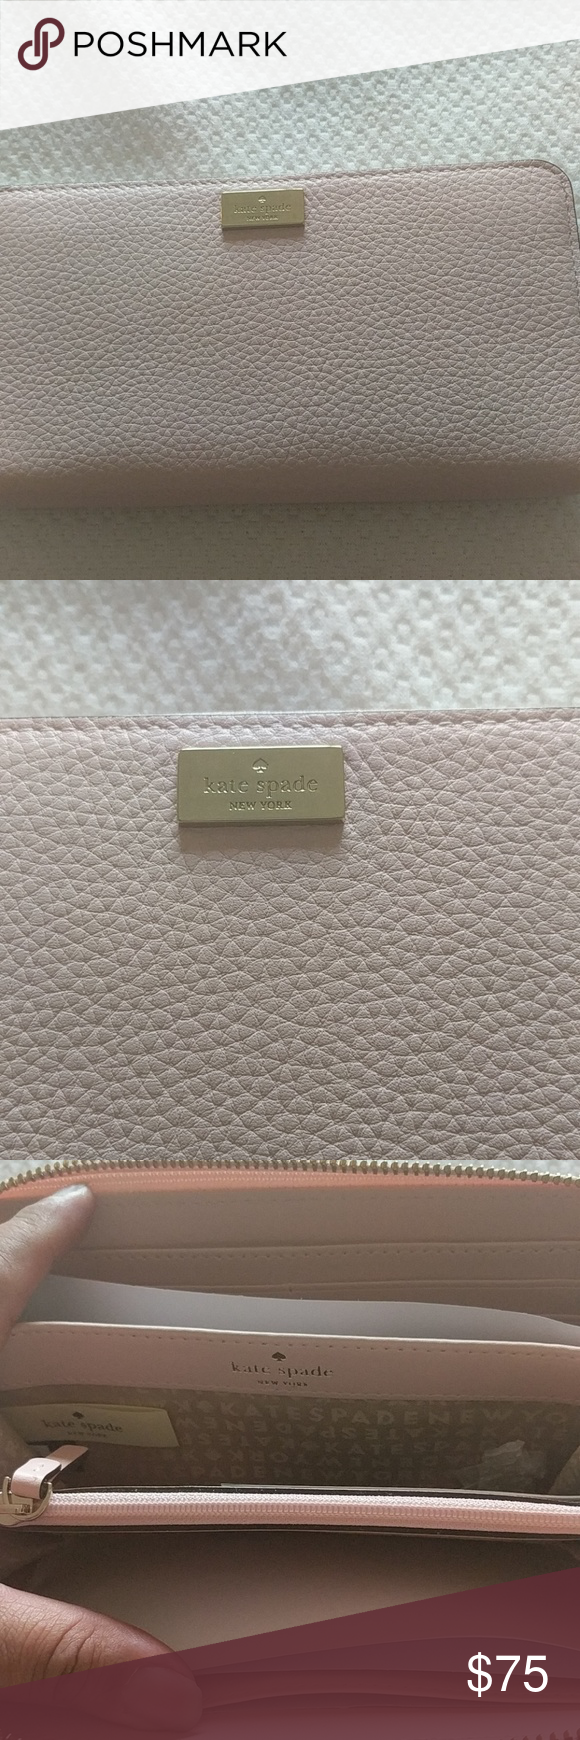 Kate Spade wallet Recently bought, Pink granite wallet never used ..Price is firm I need to sell ?? Bags Wallets